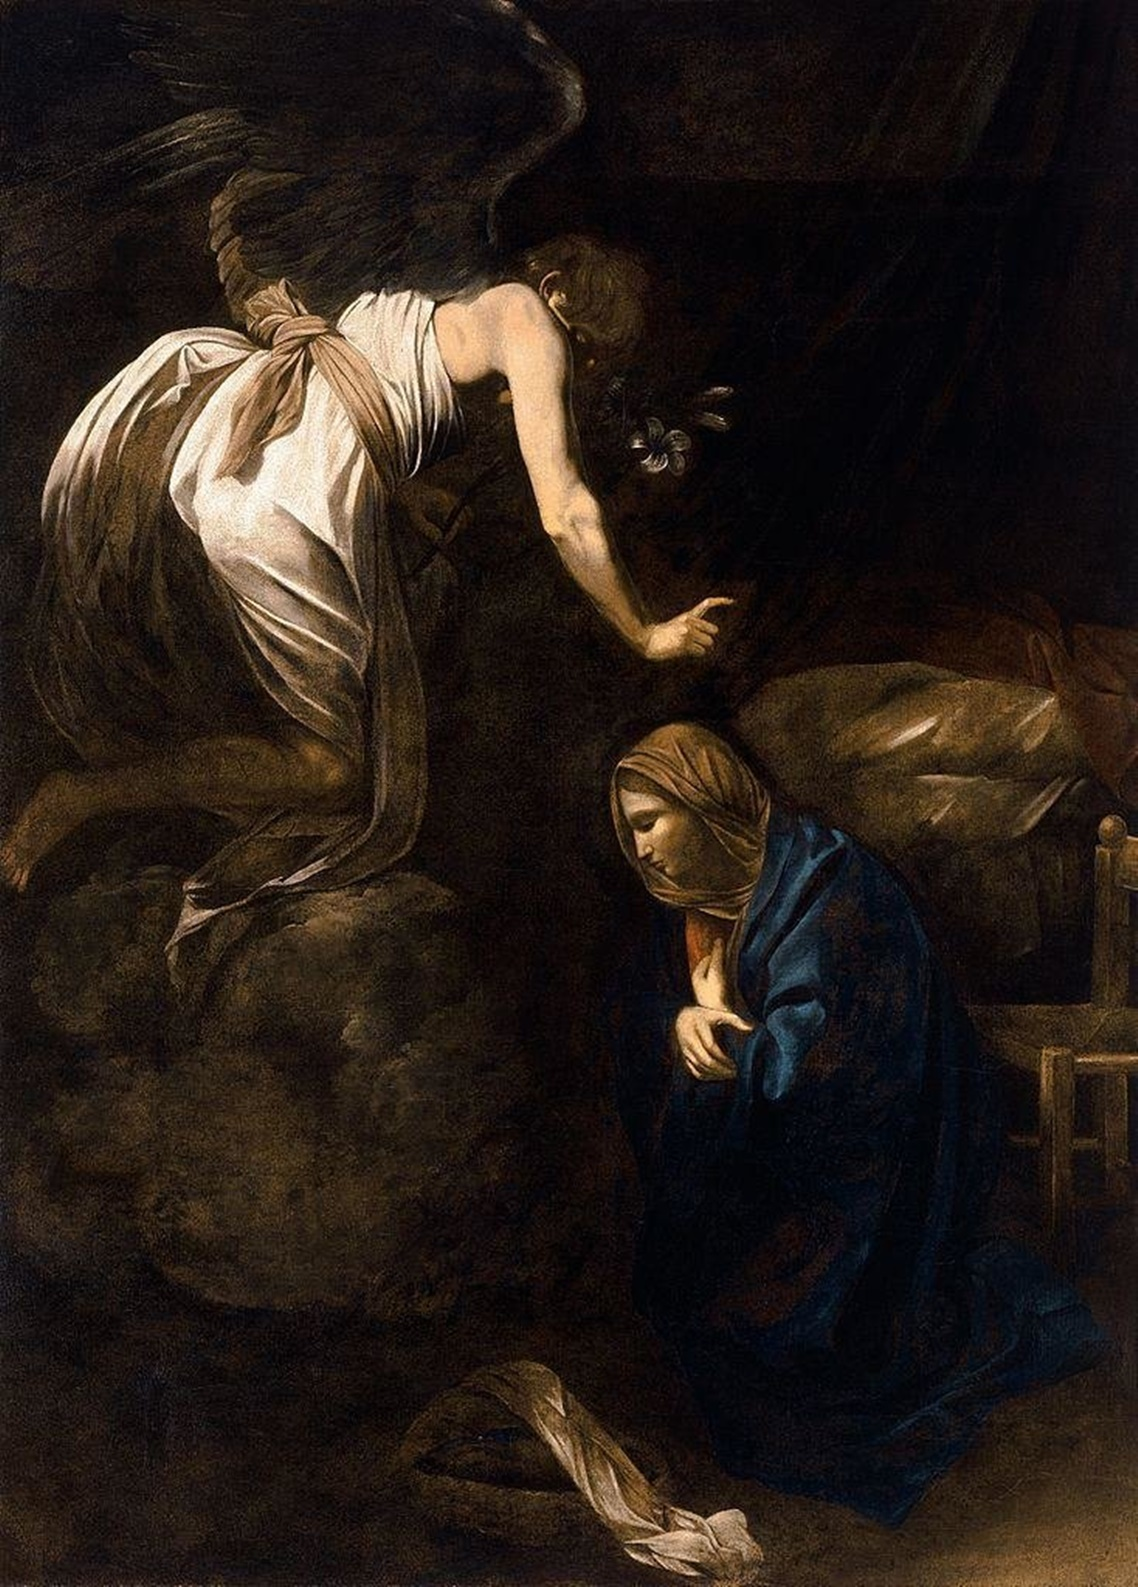 http://upload.wikimedia.org/wikipedia/commons/6/6c/Caravaggio_-_The_Annunciation.JPG